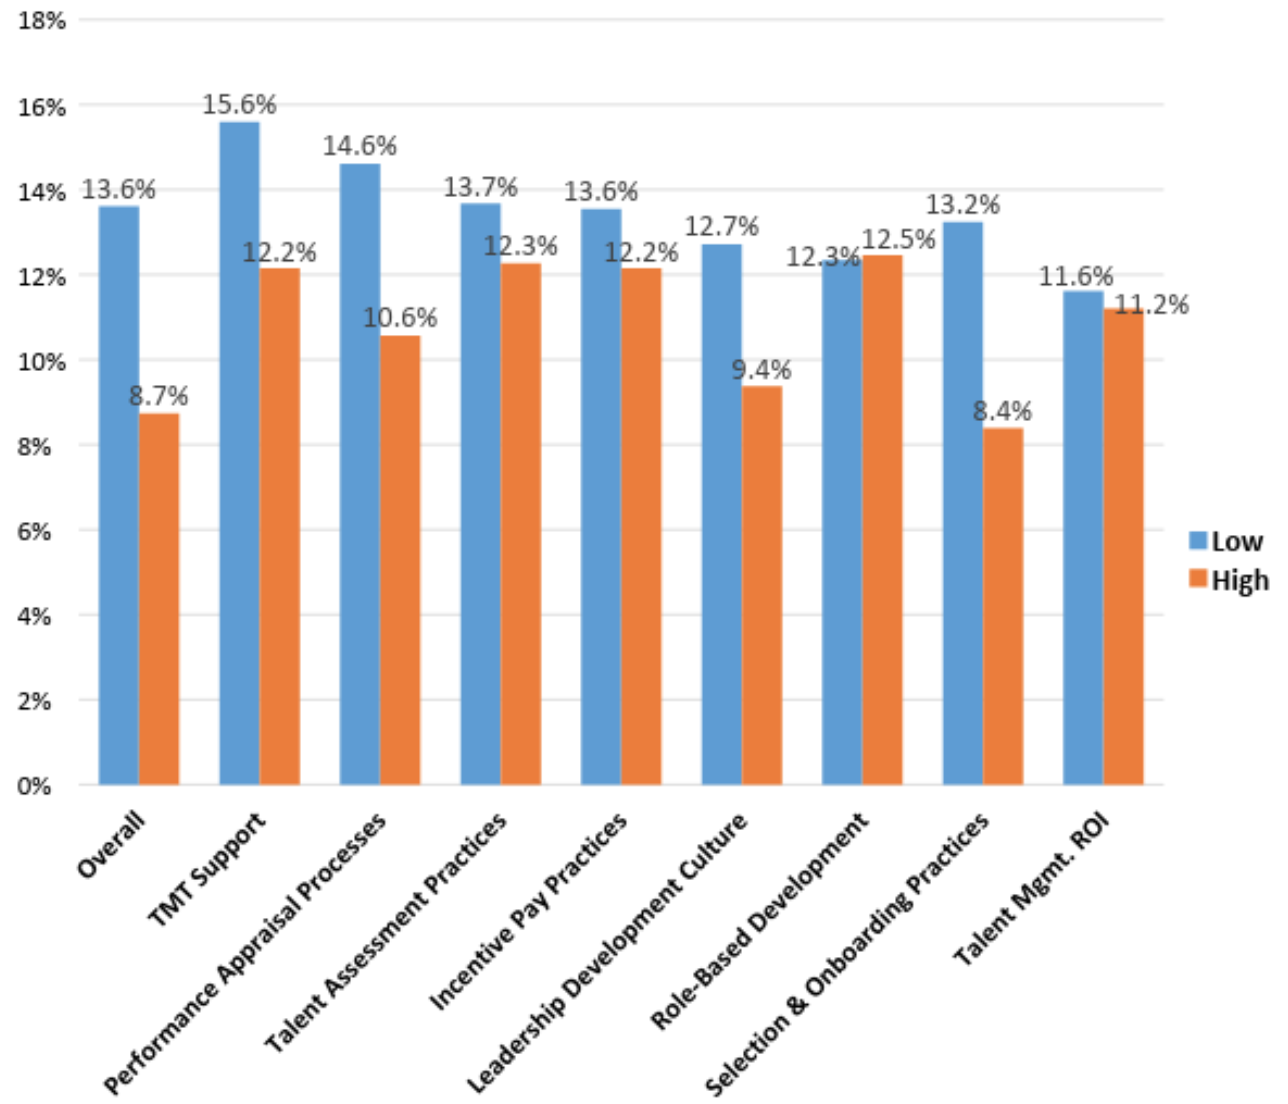 Figure 5 - Note: Hospital organizations that scored at least one standard deviation above the sample mean across each best practice are presented in orange ('High'); hospital organizations that scored at least one standard deviation below the sample mean across each best practice are presented in blue ('Low).